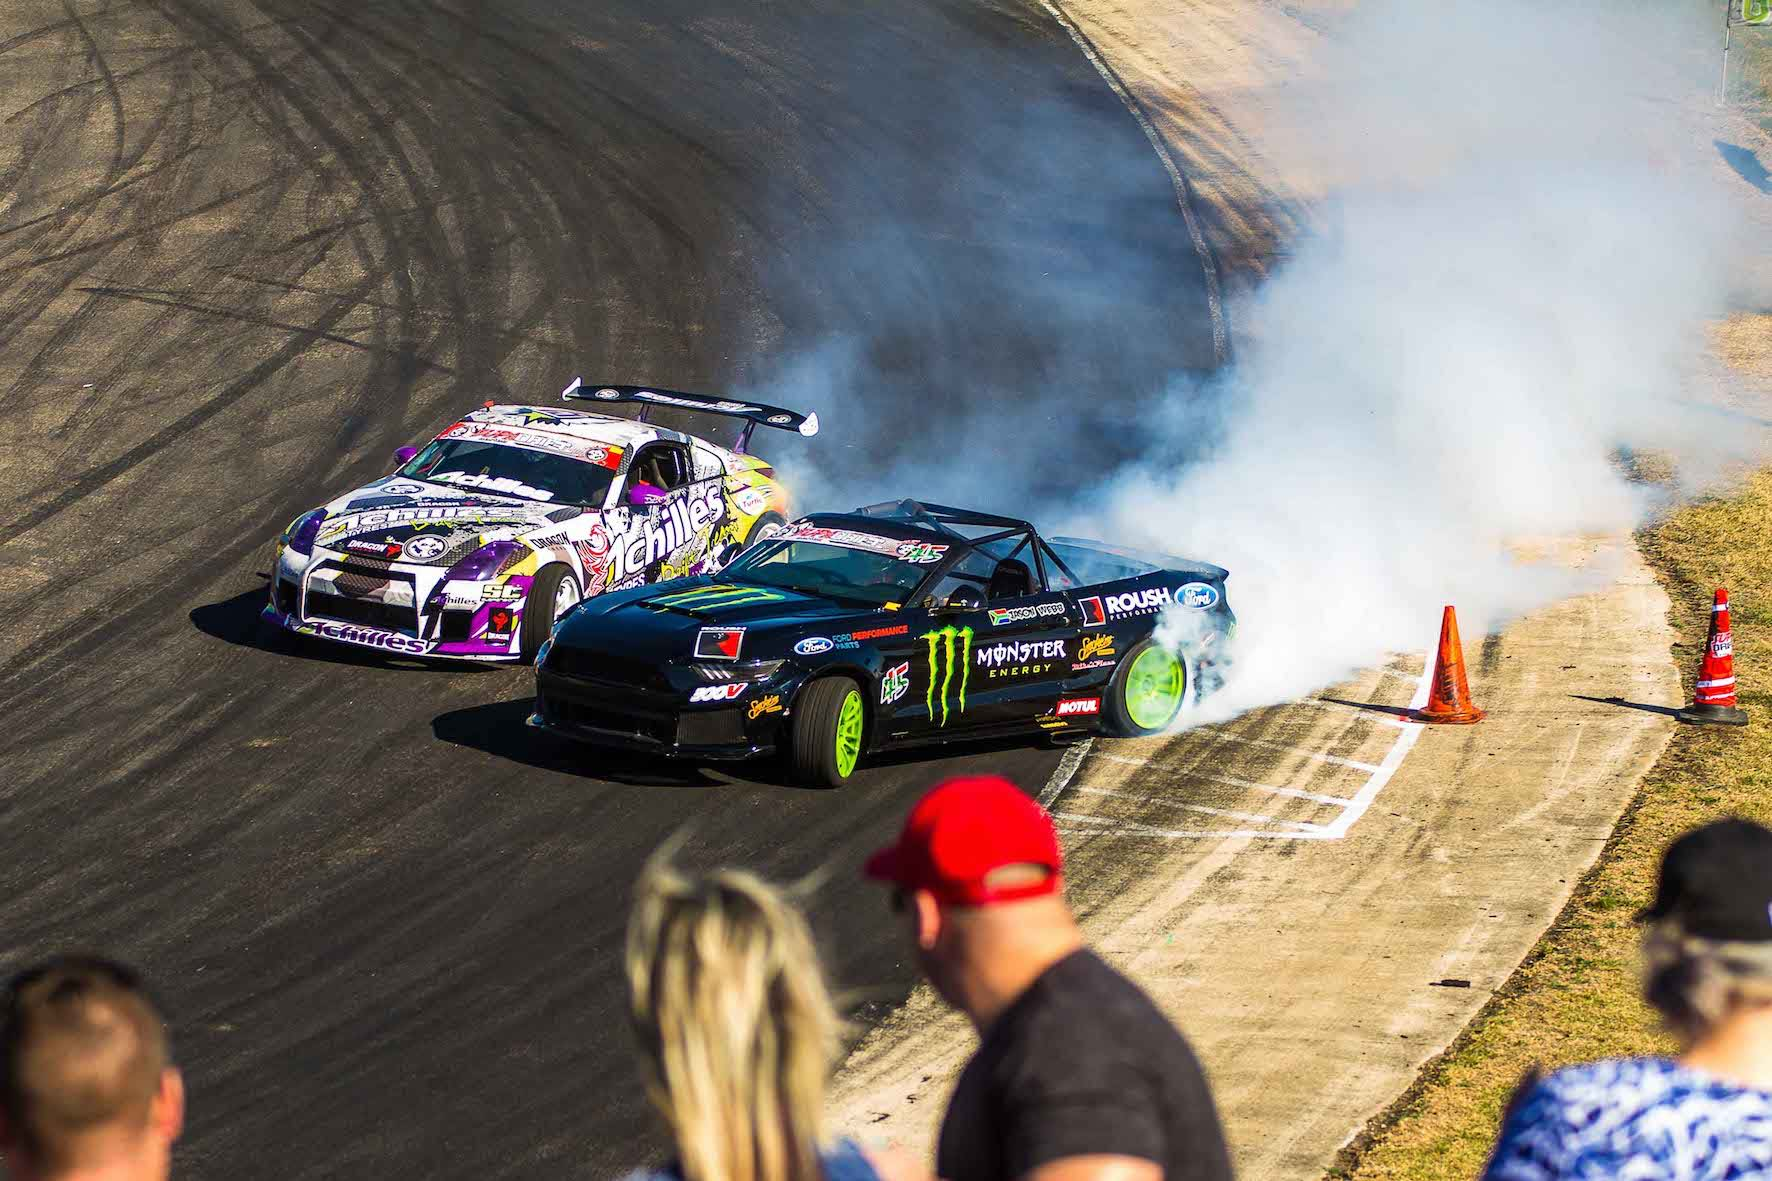 Jason Webb drifting his way to victory at Round 3 of the SupaDrift Series